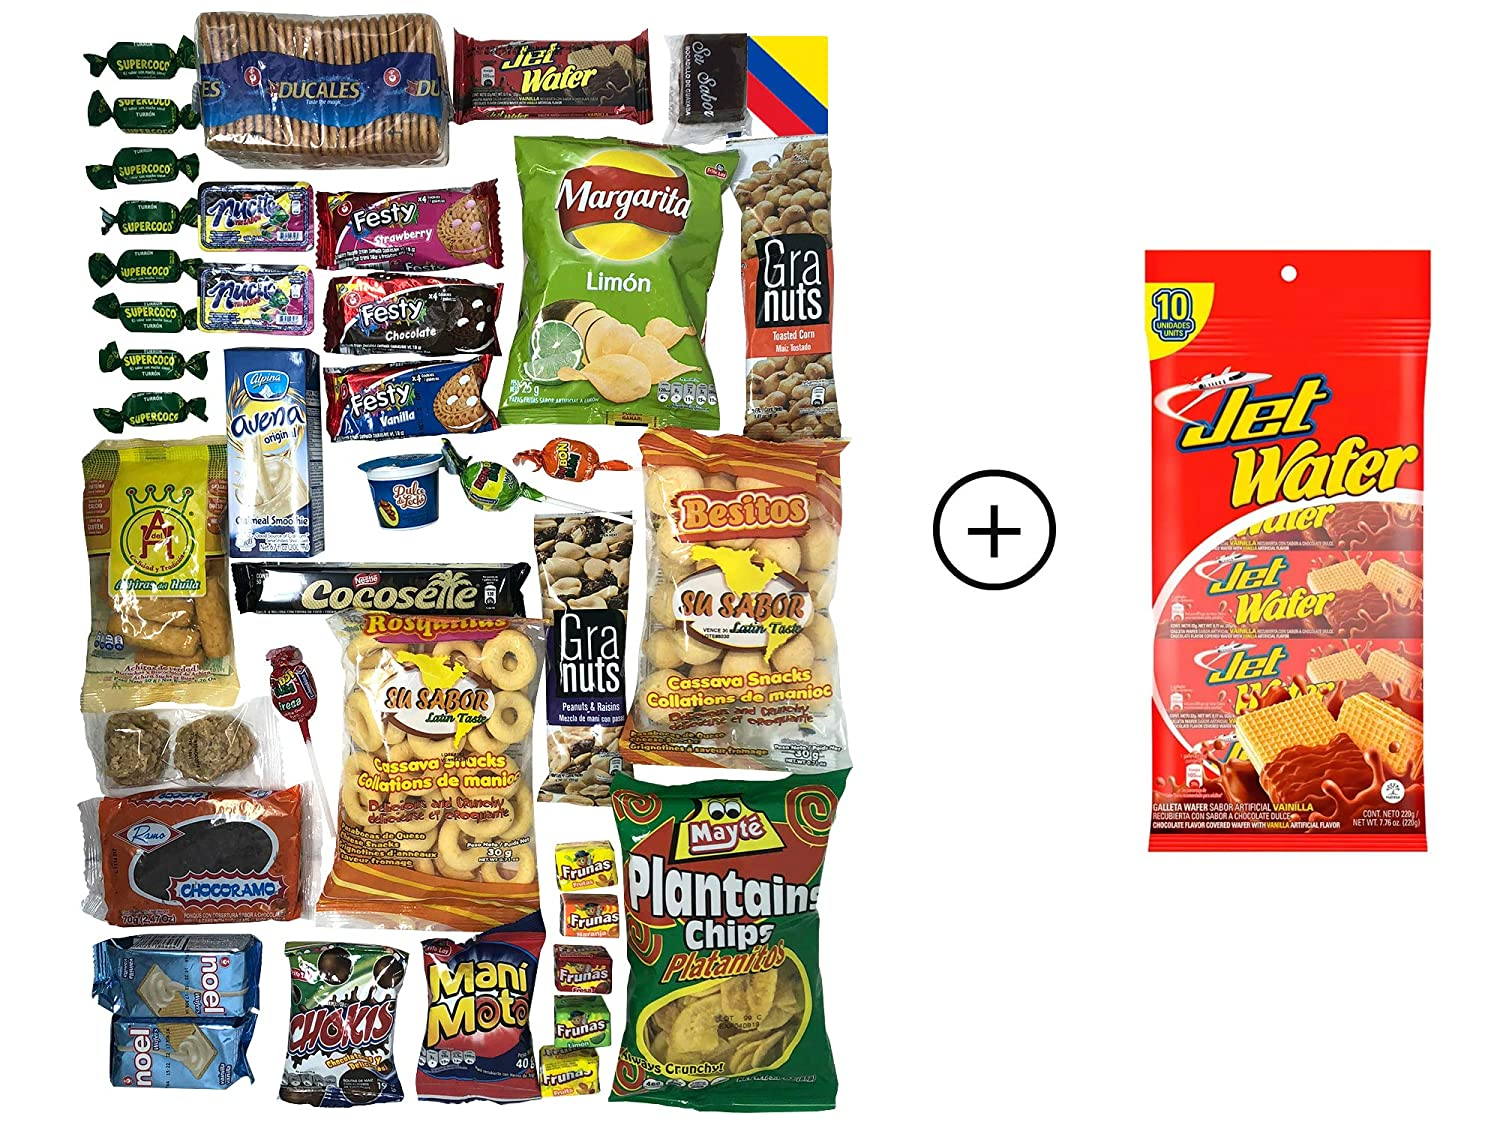 Colombian Snacks Sampler Variety Box - Cookies, Chips & Candies Assortment Pack - Delicious Gift Box - College Care Package (Mecato+Bandera): Amazon.com: ...